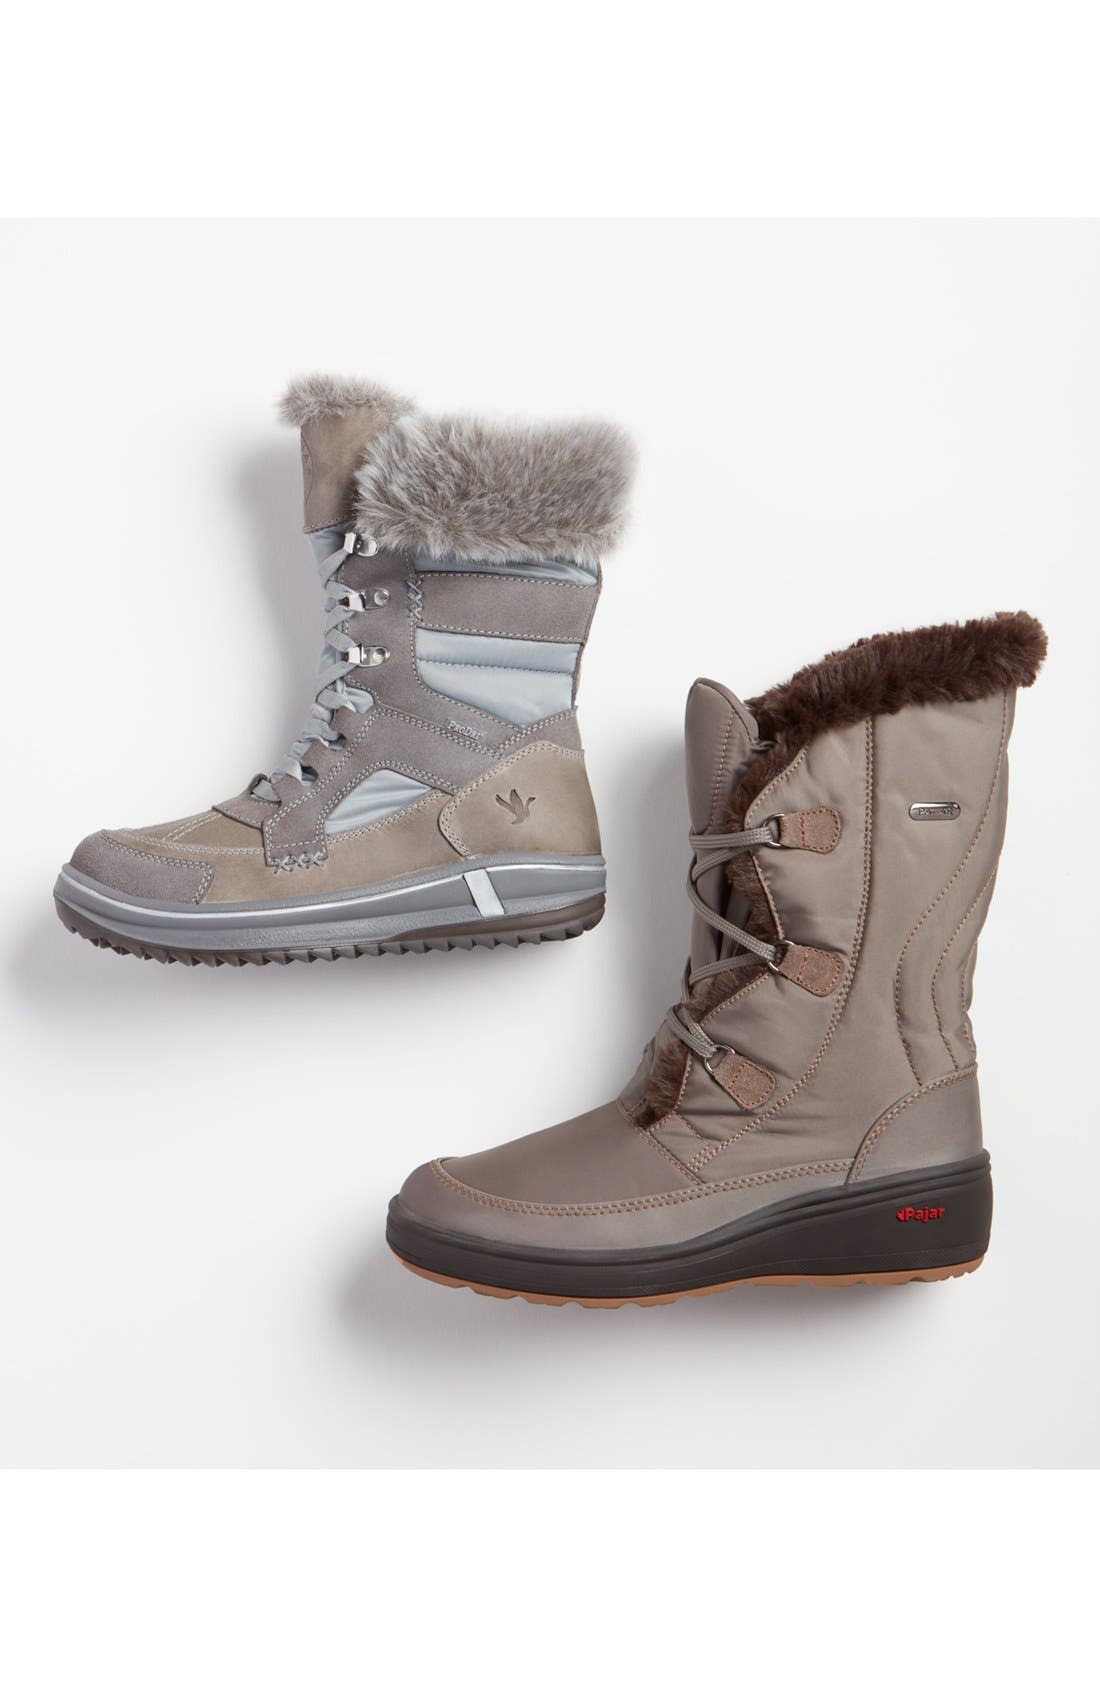 'Marcie' Waterproof Snow Boot with Faux Fur Collar,                             Main thumbnail 1, color,                             100